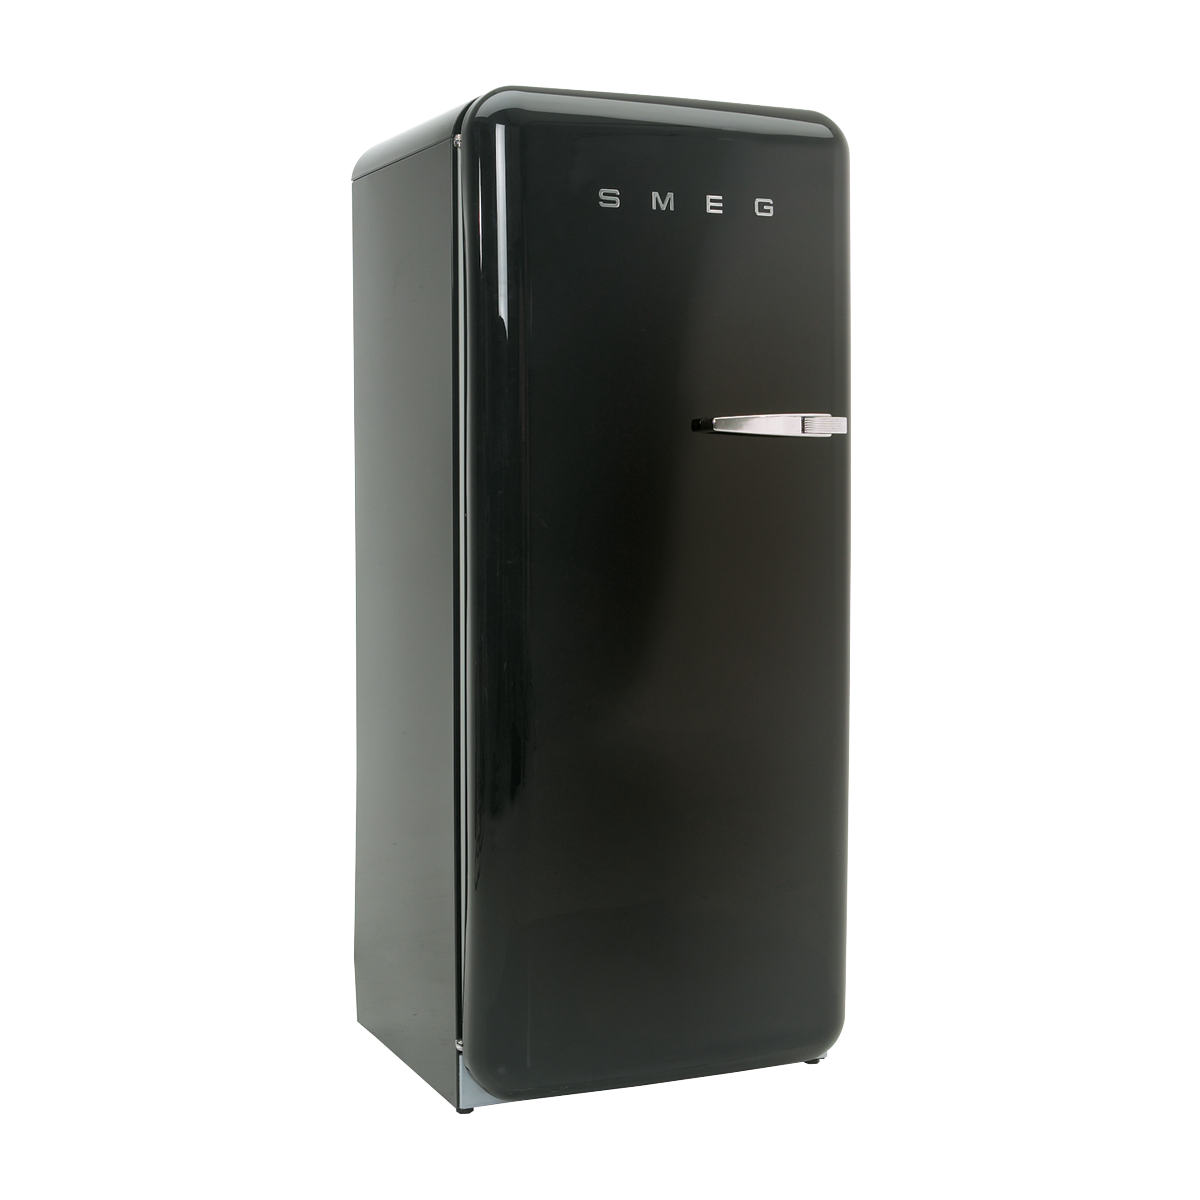 frigo retro smeg noir femat pour ma f te je suis par. Black Bedroom Furniture Sets. Home Design Ideas